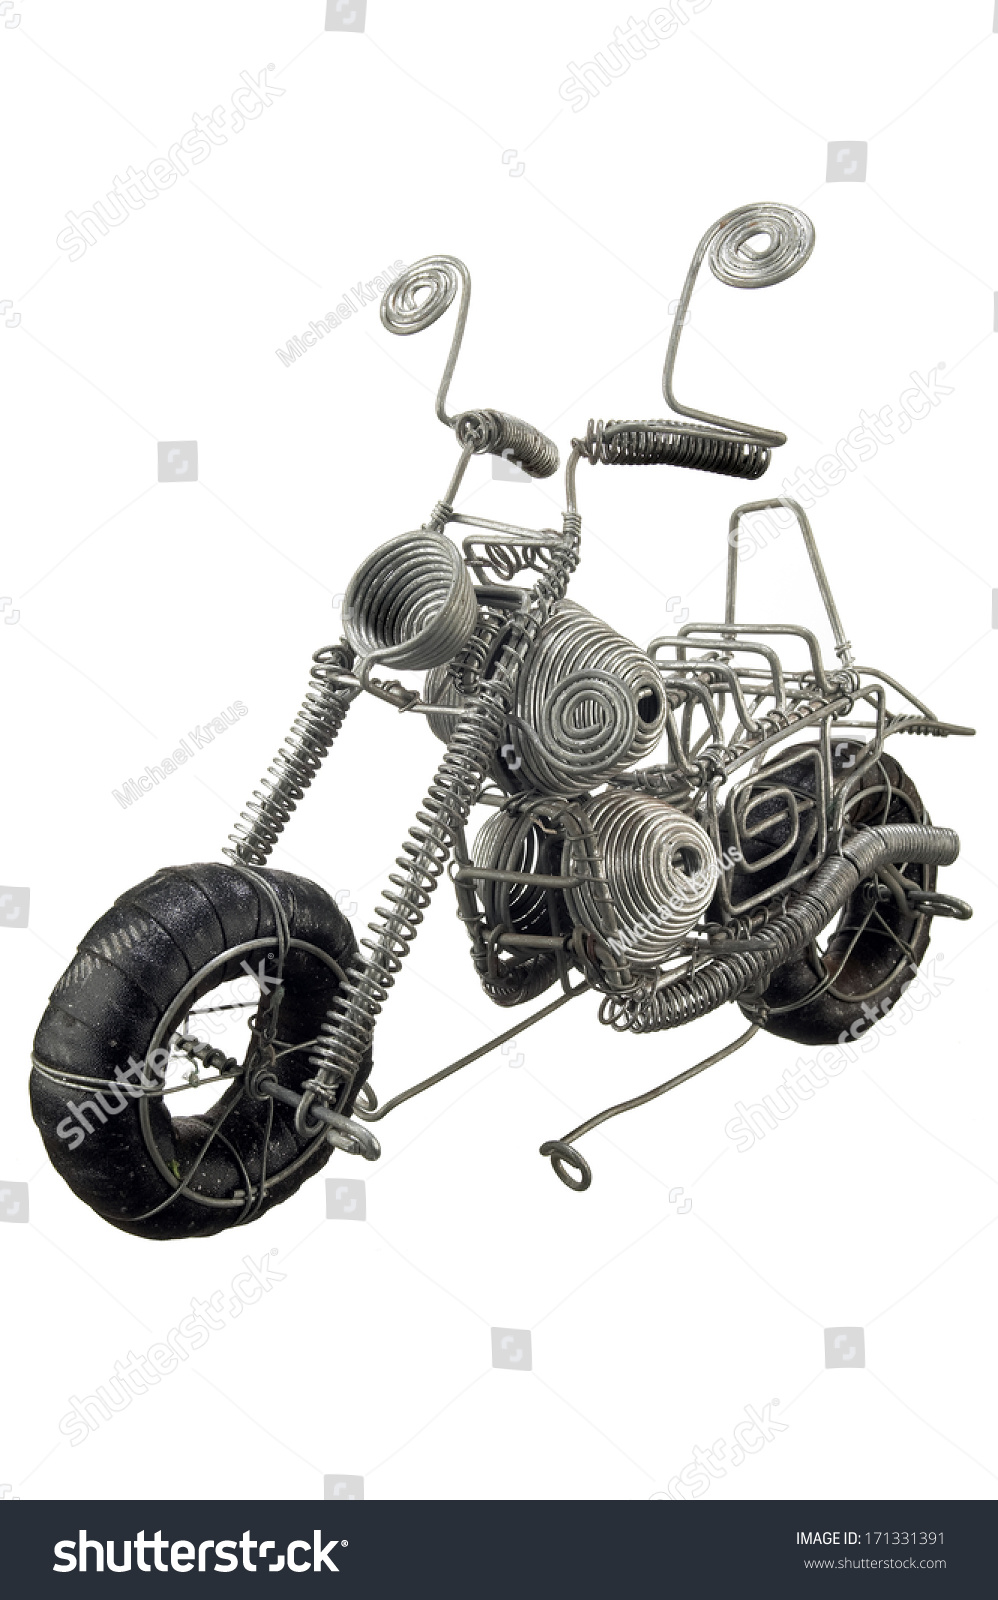 Wire Crafted Motorcycle Statue Stock Photo (Edit Now)- Shutterstock